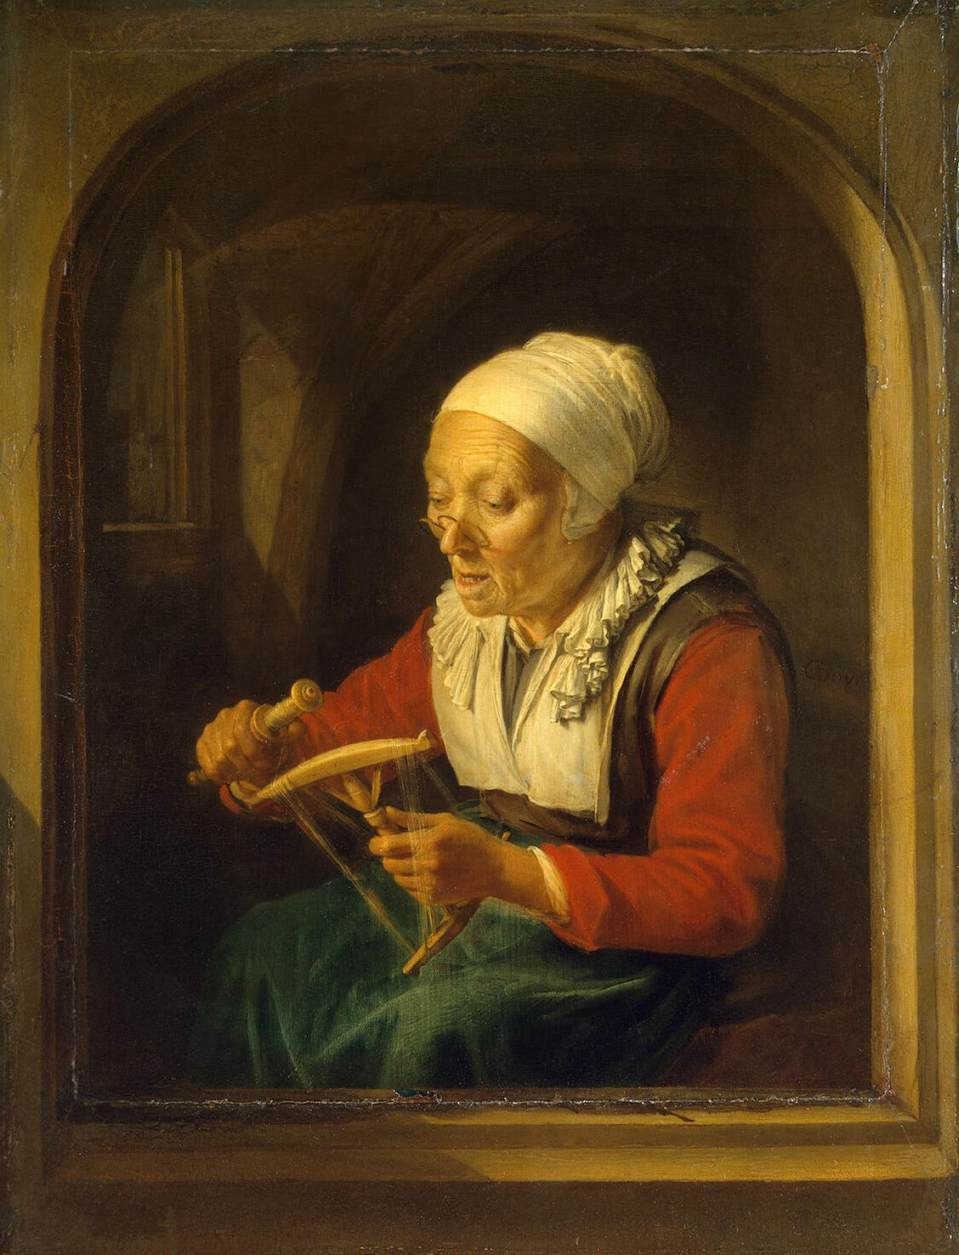 Gerard_Dou_-_Old_Woman_Unreeling_Threads_-_WGA06655